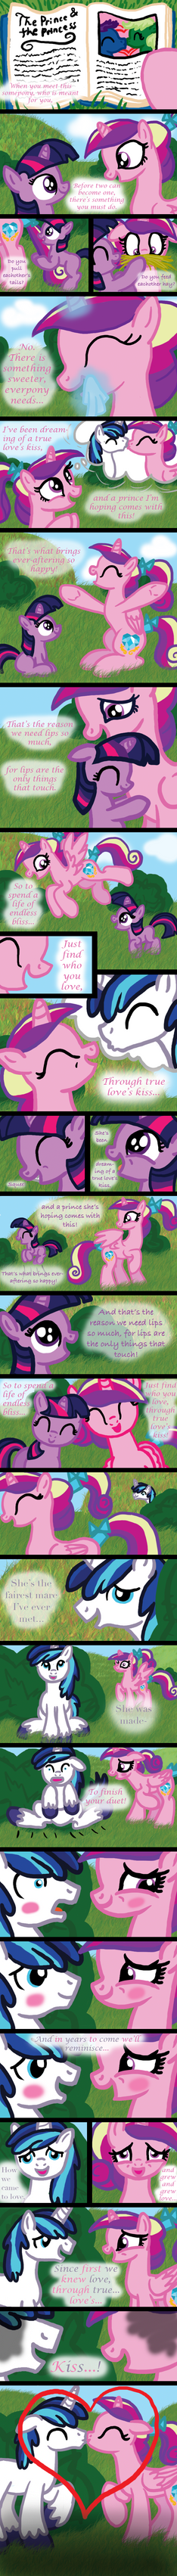 True Love's Kiss: Featuring Cadance by InkRose98